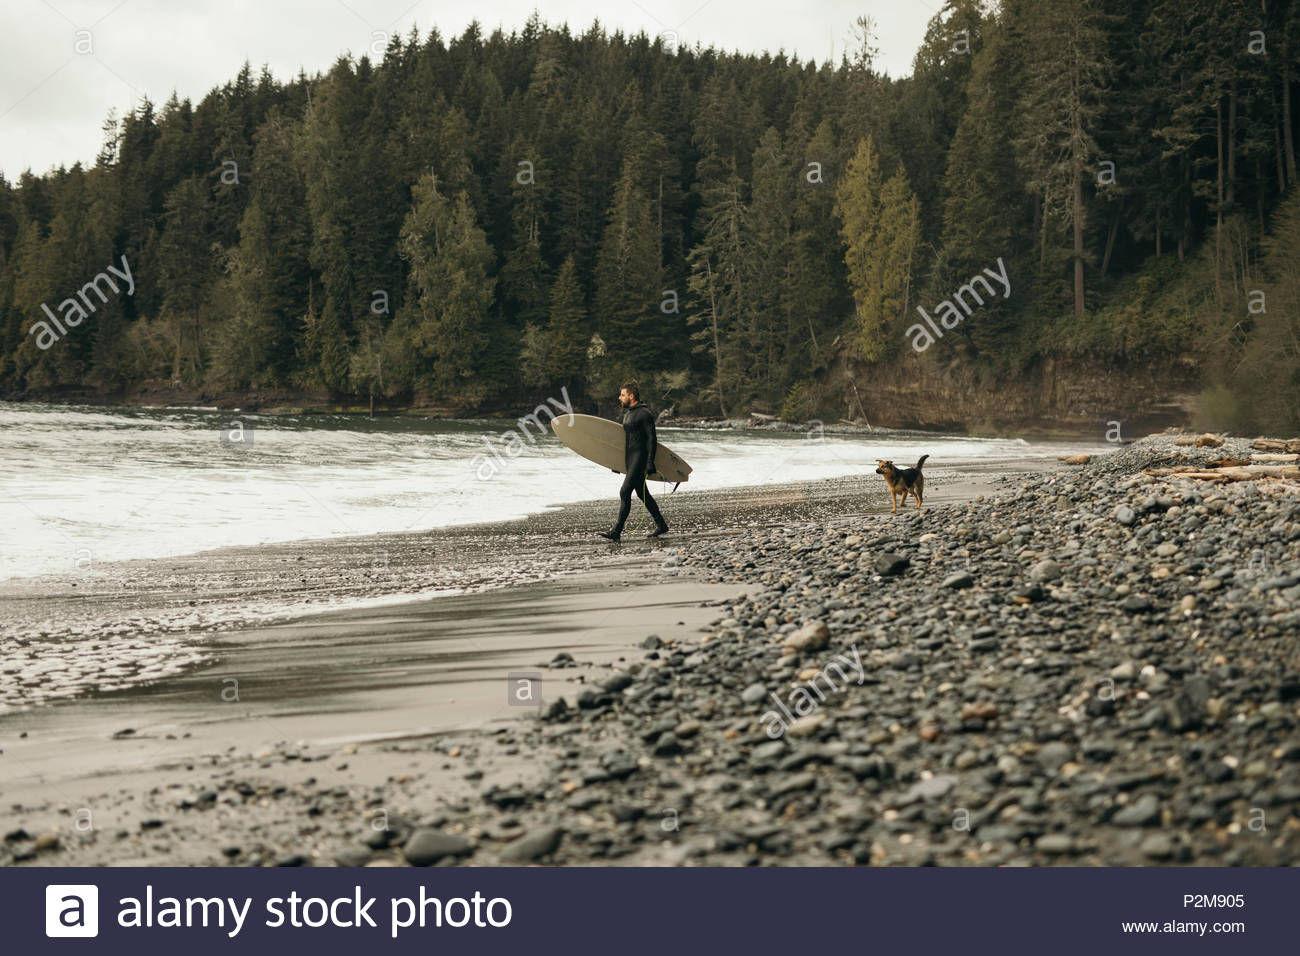 Male surfer with dog carrying surfboard on rugged beach - Stock Image